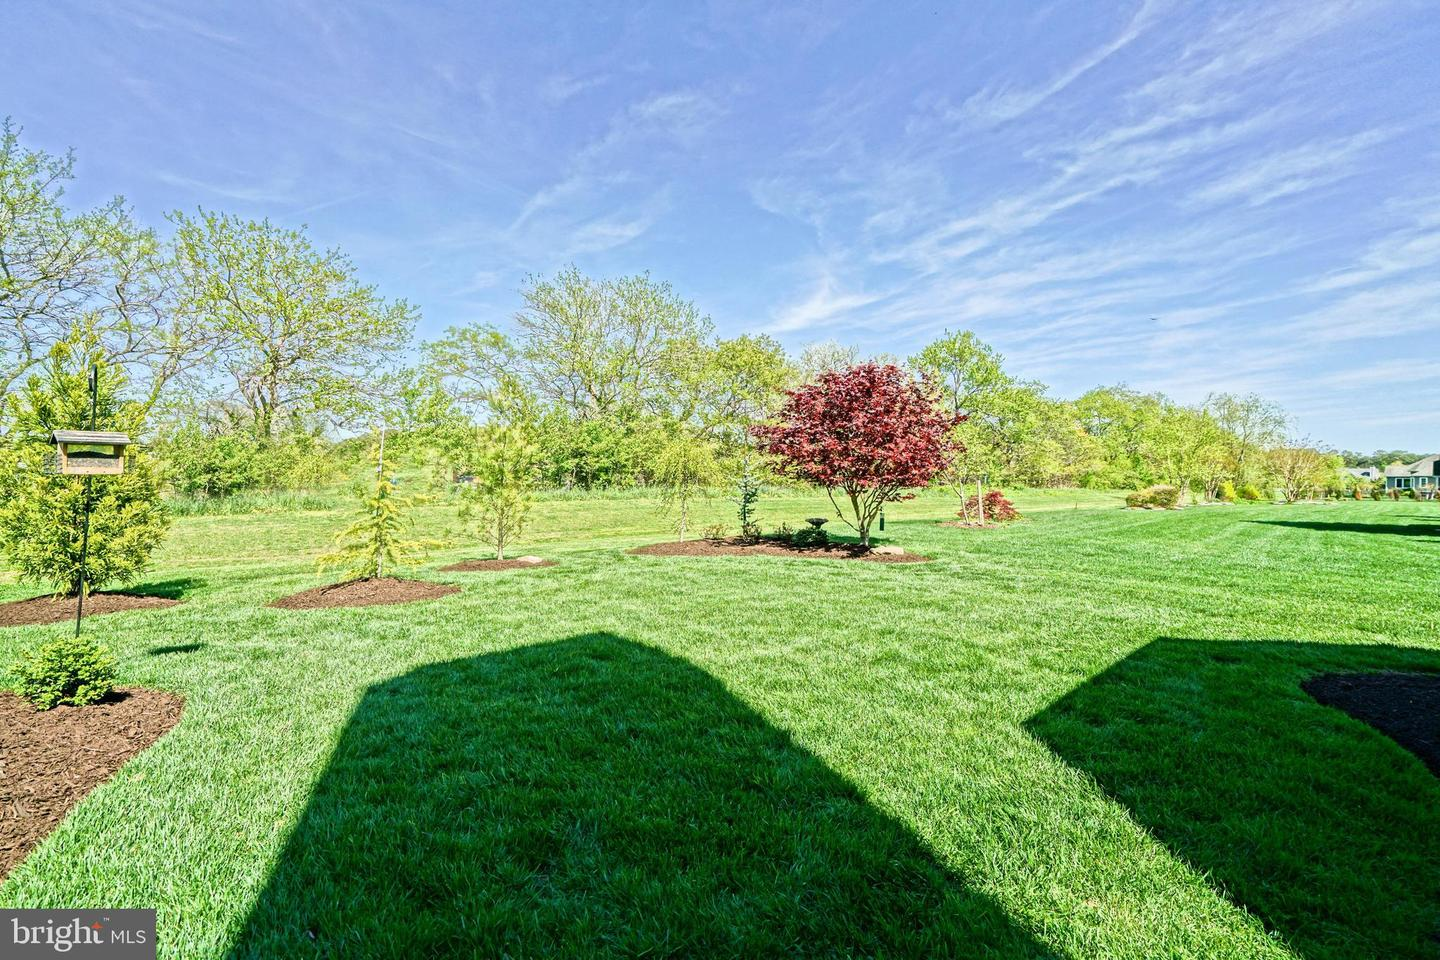 DESU139128-301667384295-2019-08-05-10-43-56 35222 Overfalls Dr N | Lewes, DE Real Estate For Sale | MLS# Desu139128  - Lee Ann Group